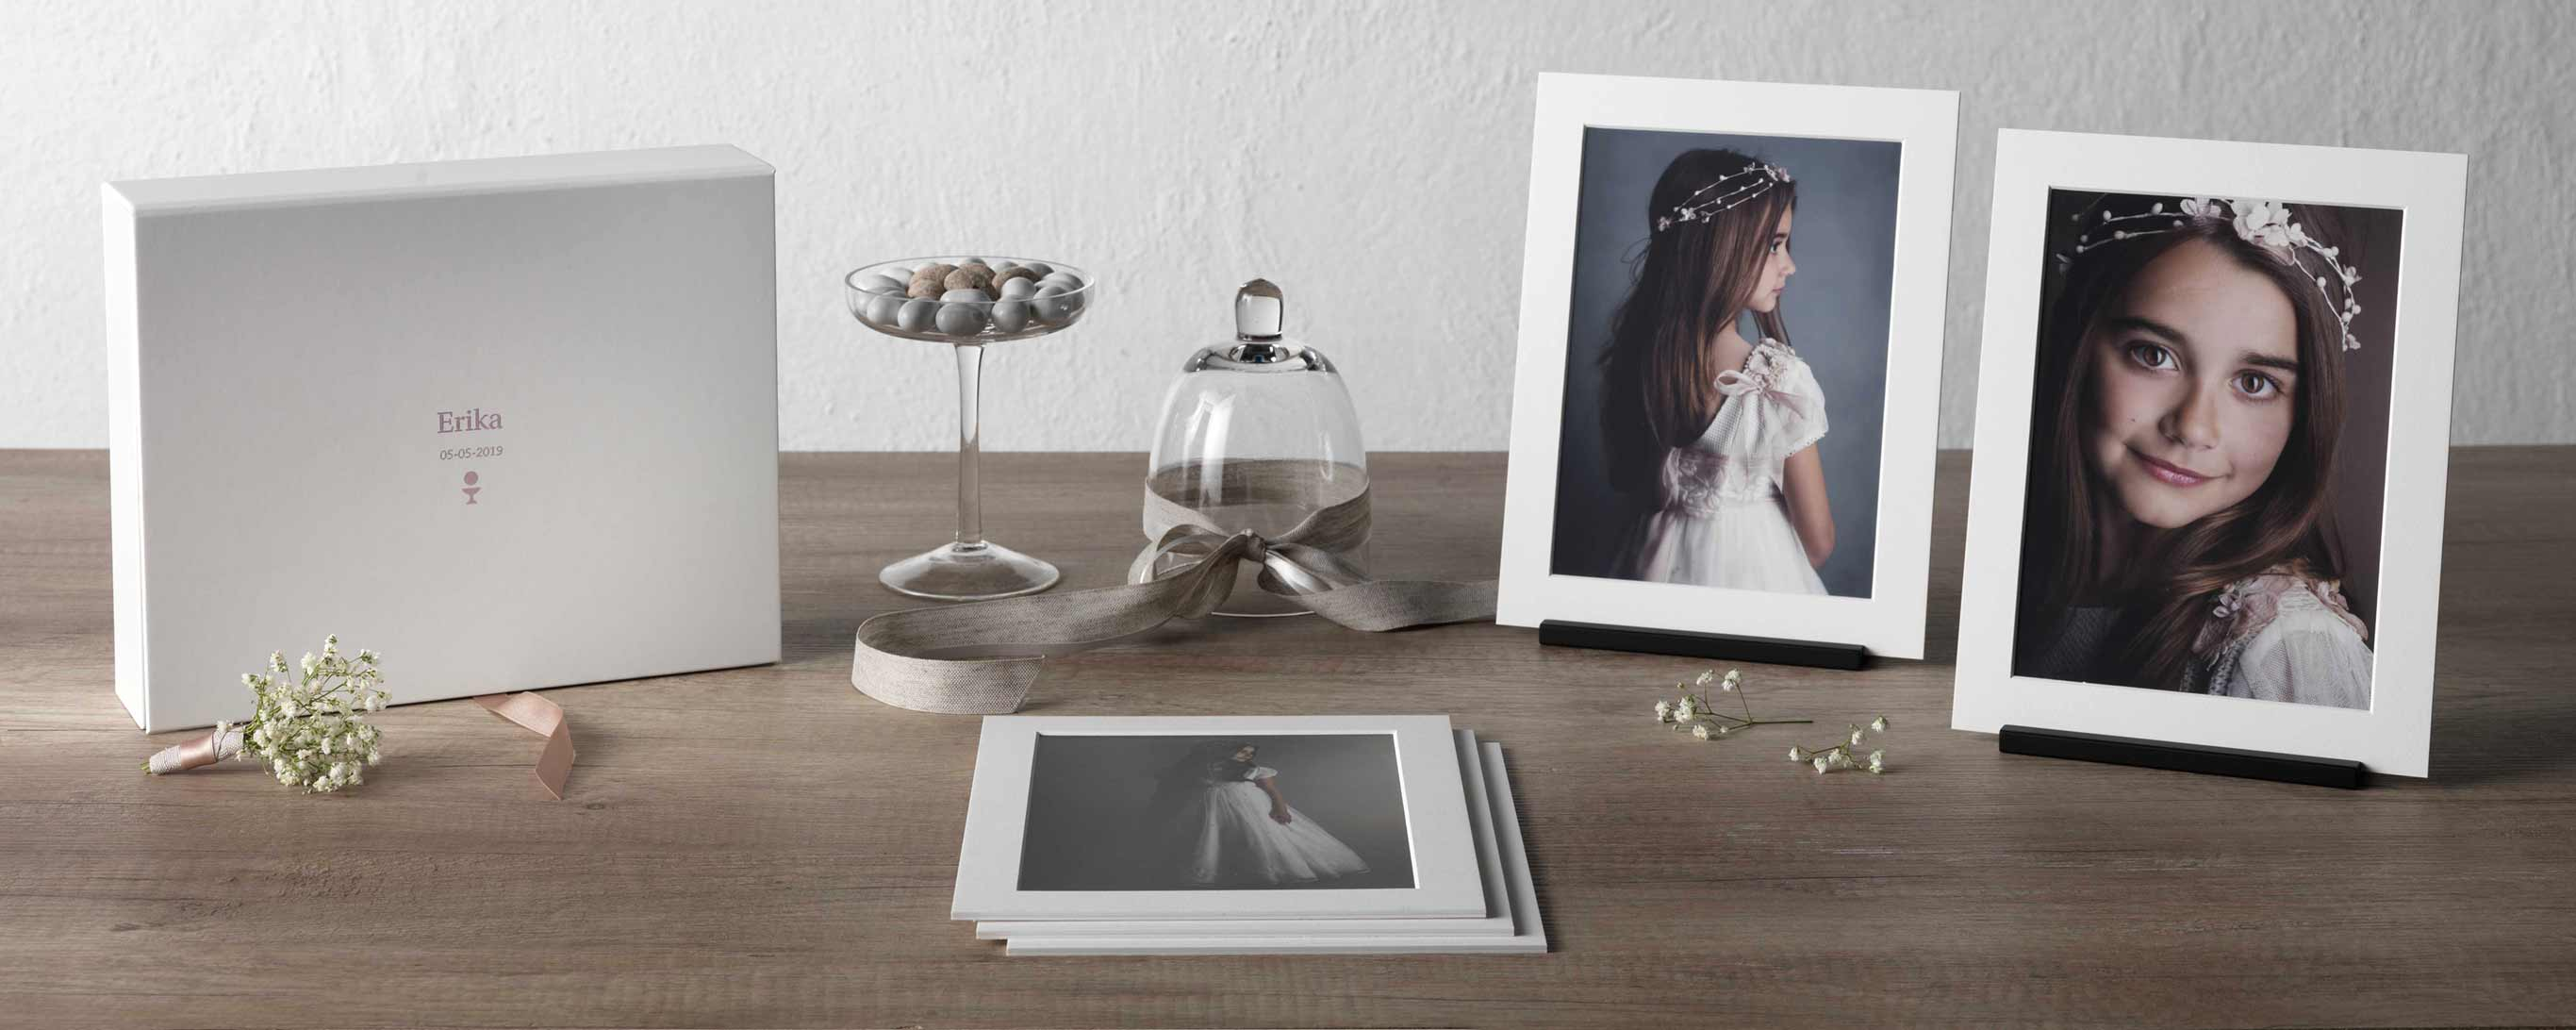 MATTED-PRINTS_3